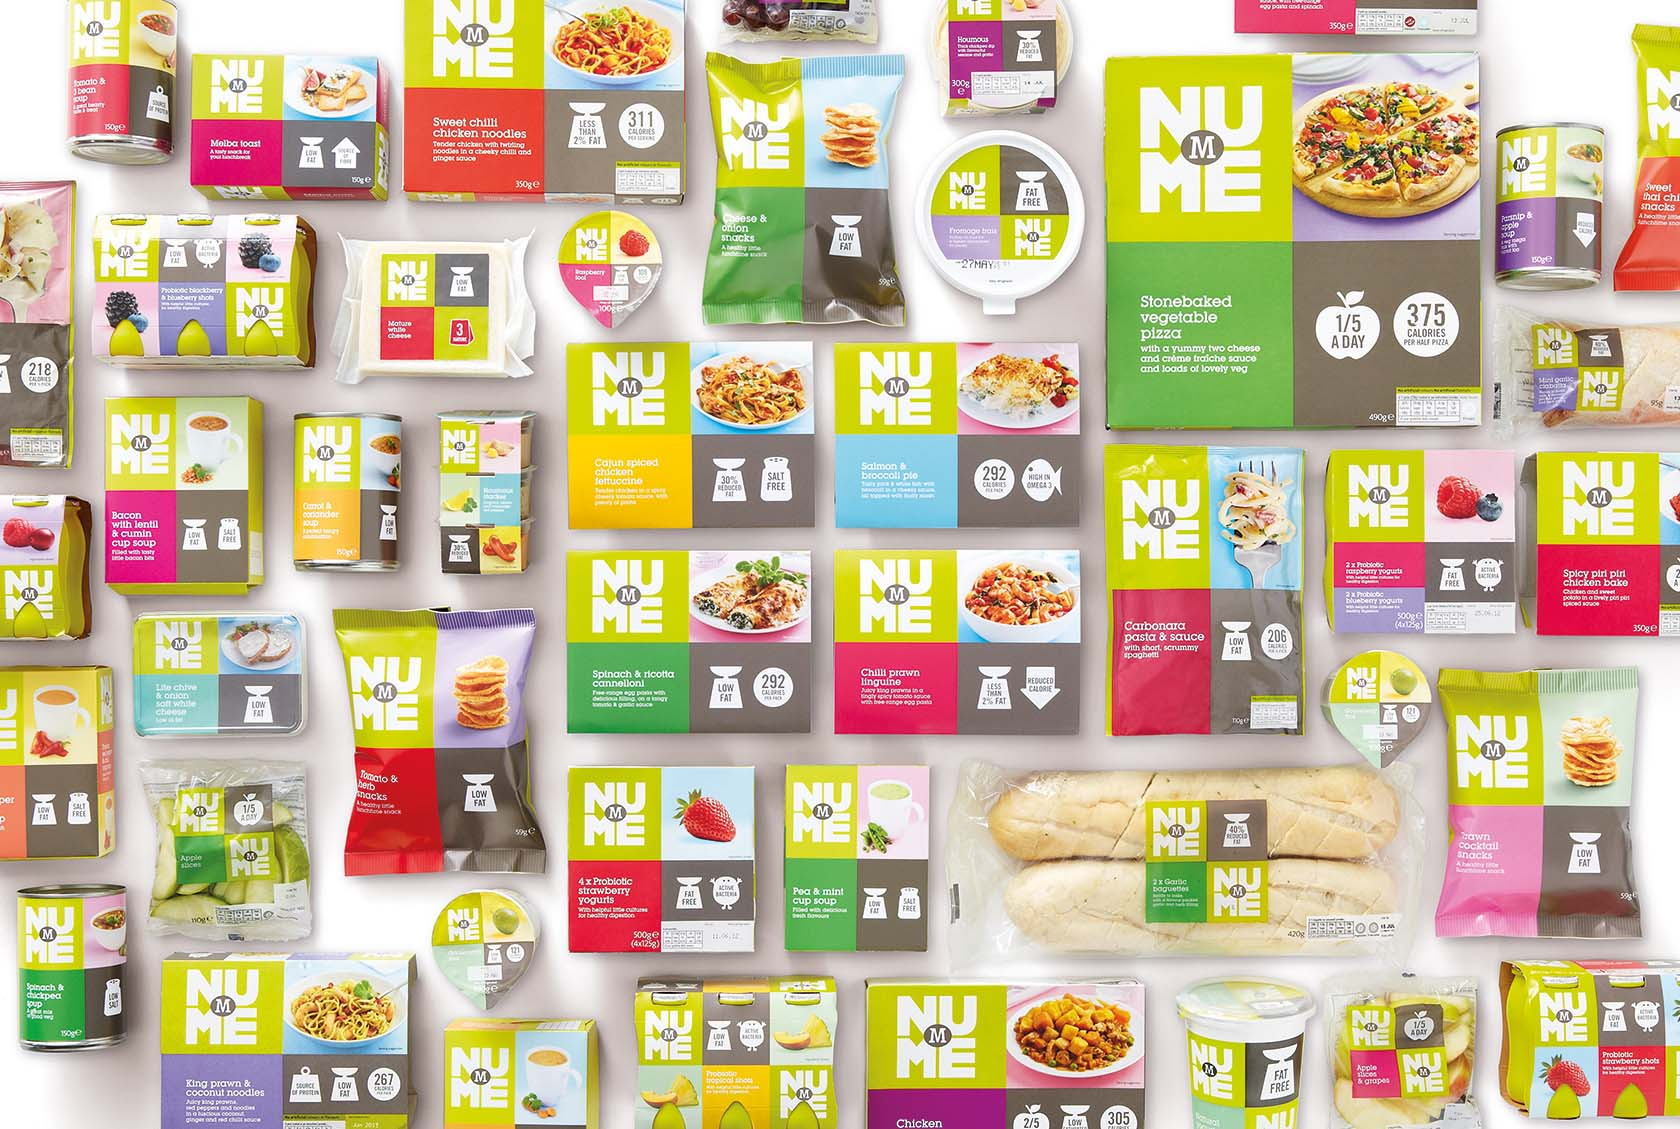 WMH-NUME-MORRISONS-WALLPAPER-WEB image